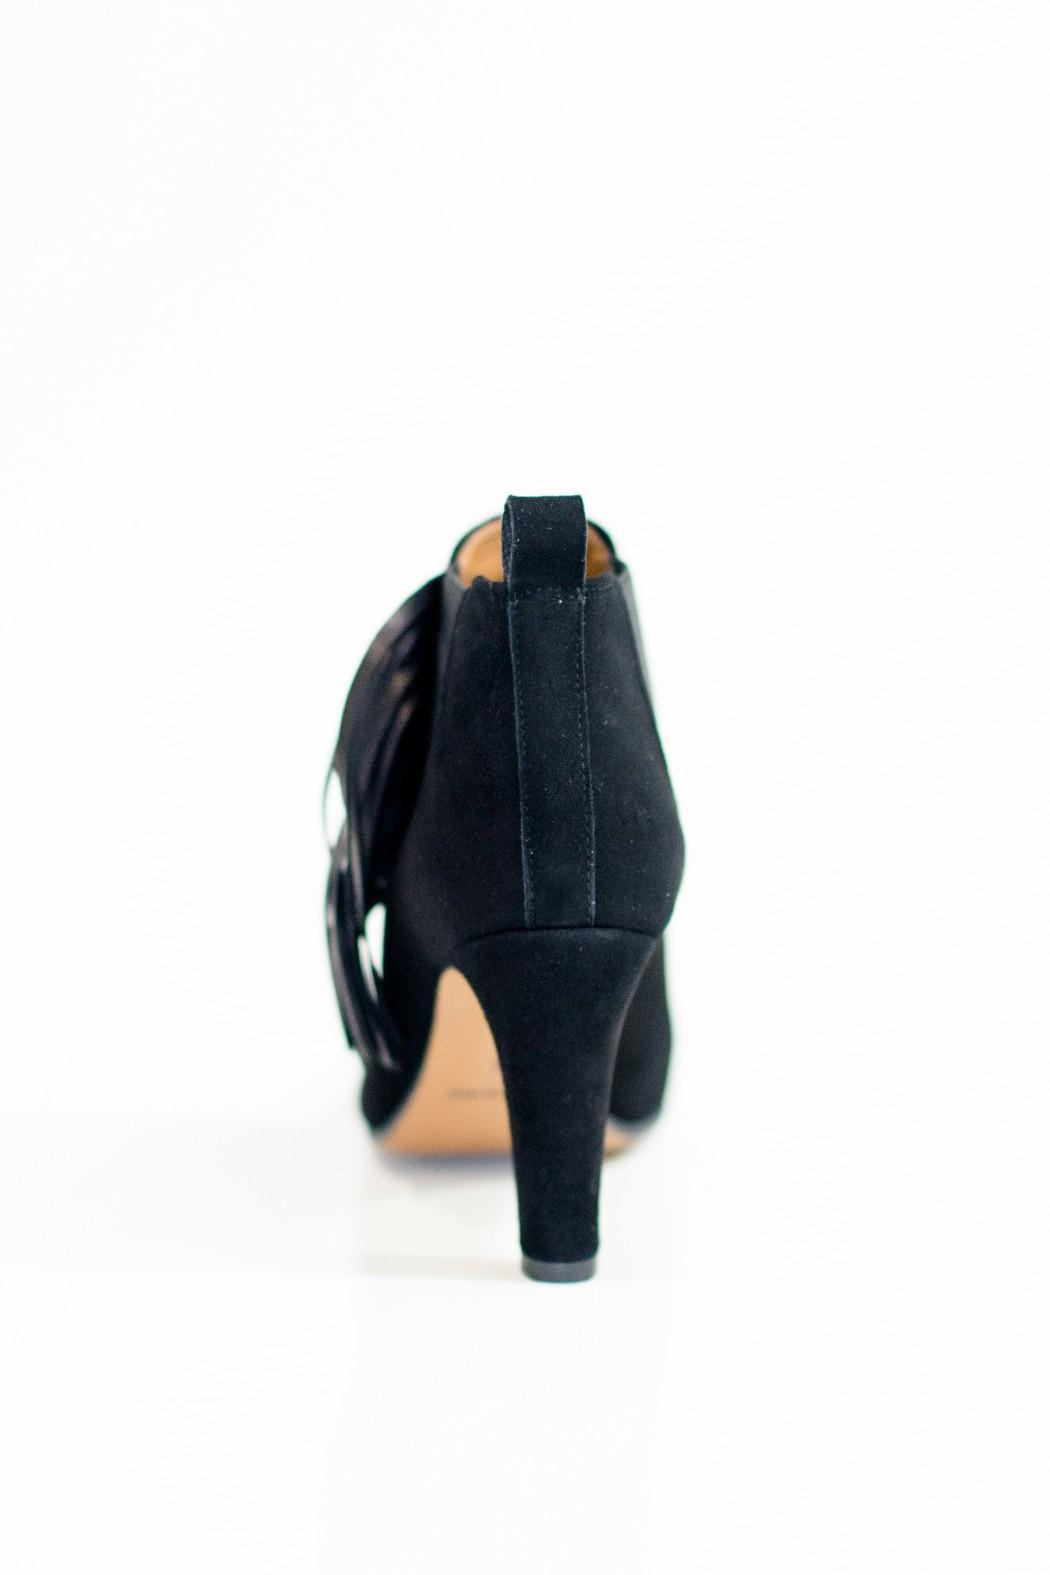 Bianca Di Fringe Ankle Booties Black - Side Cropped Image